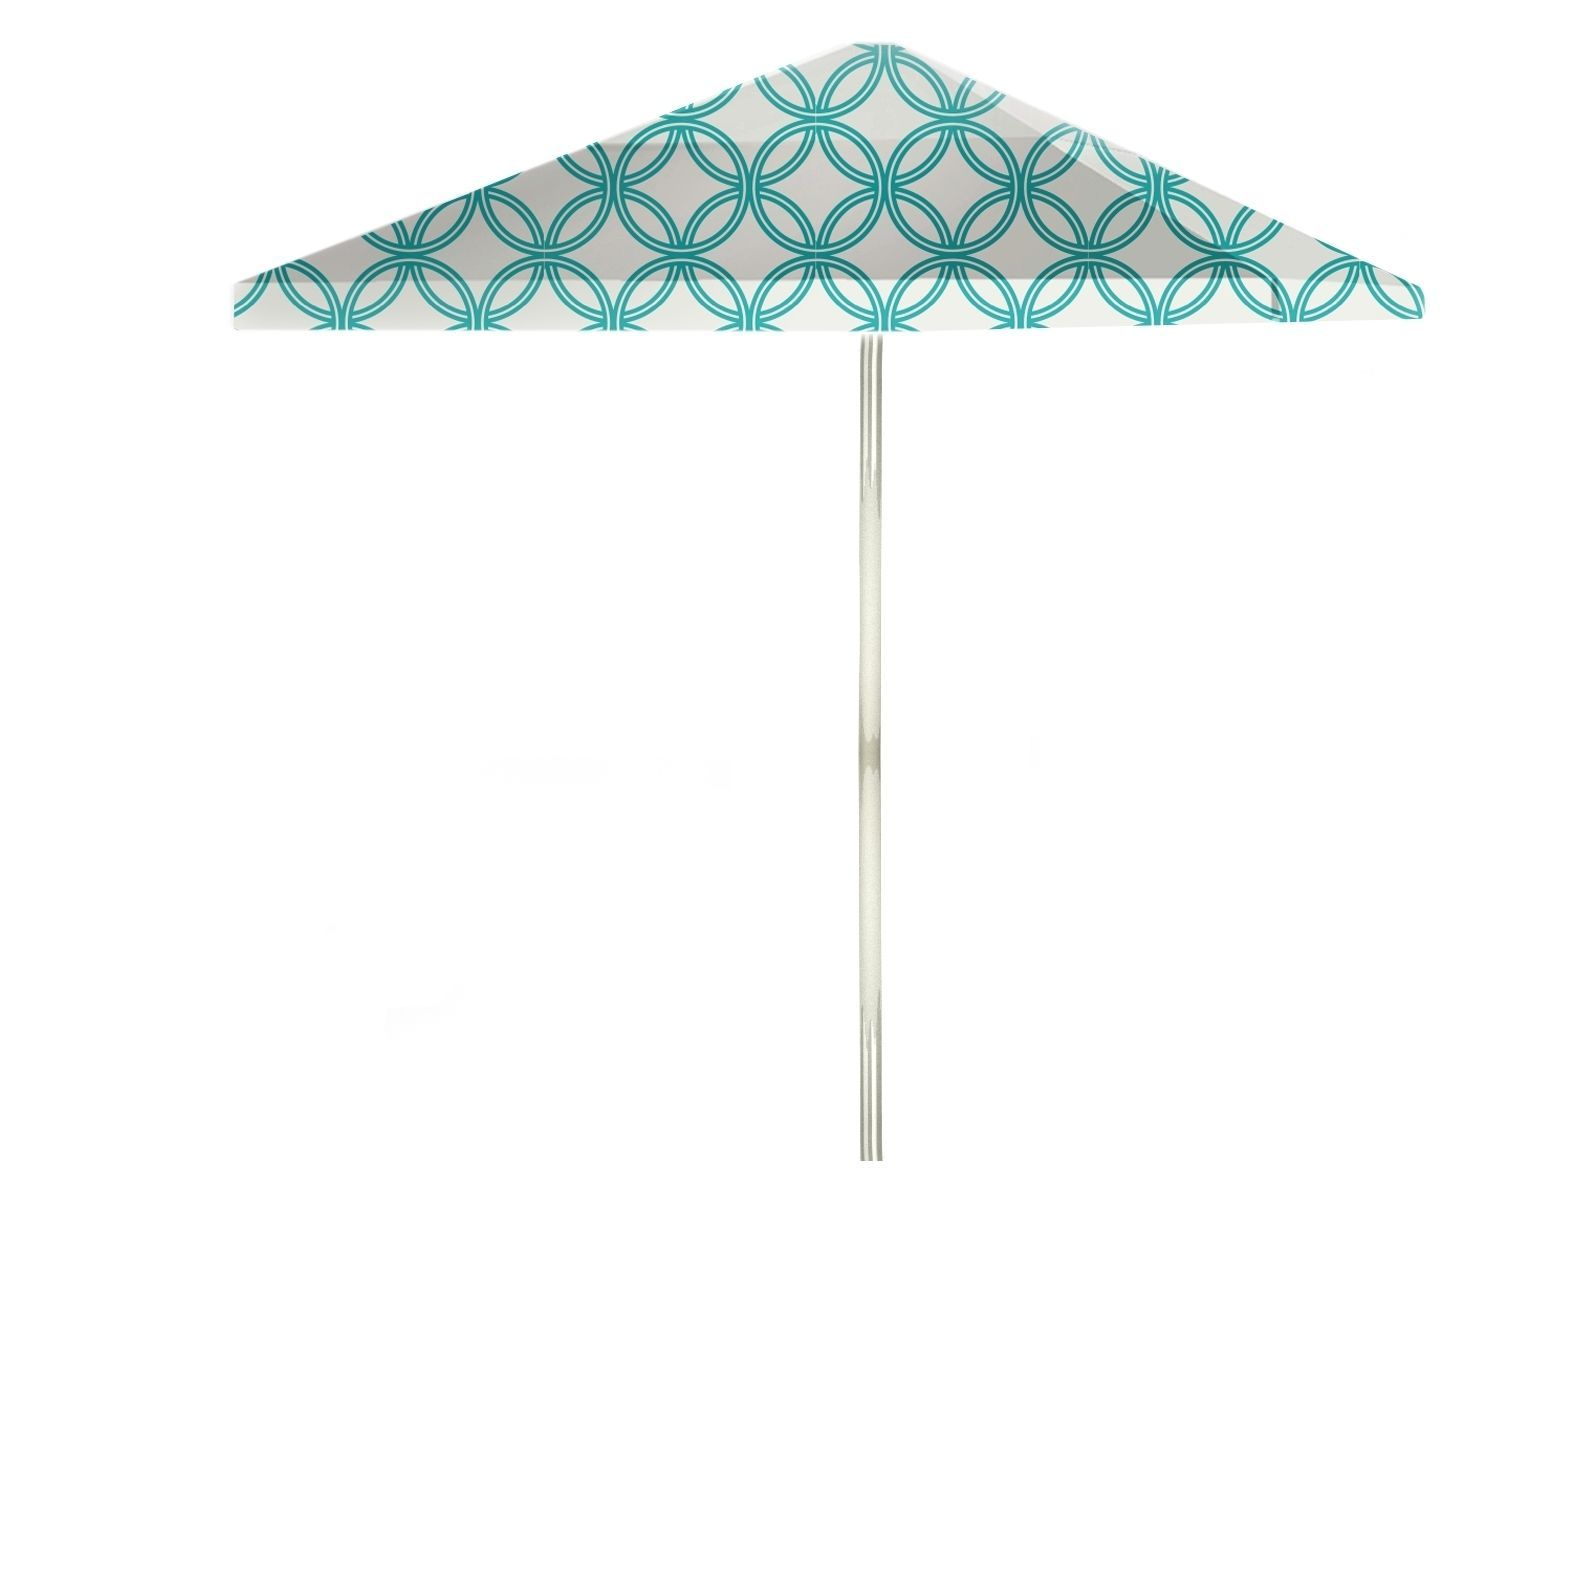 Best of Times Eternity Circles 8 foot Patio Umbrella Teal & White